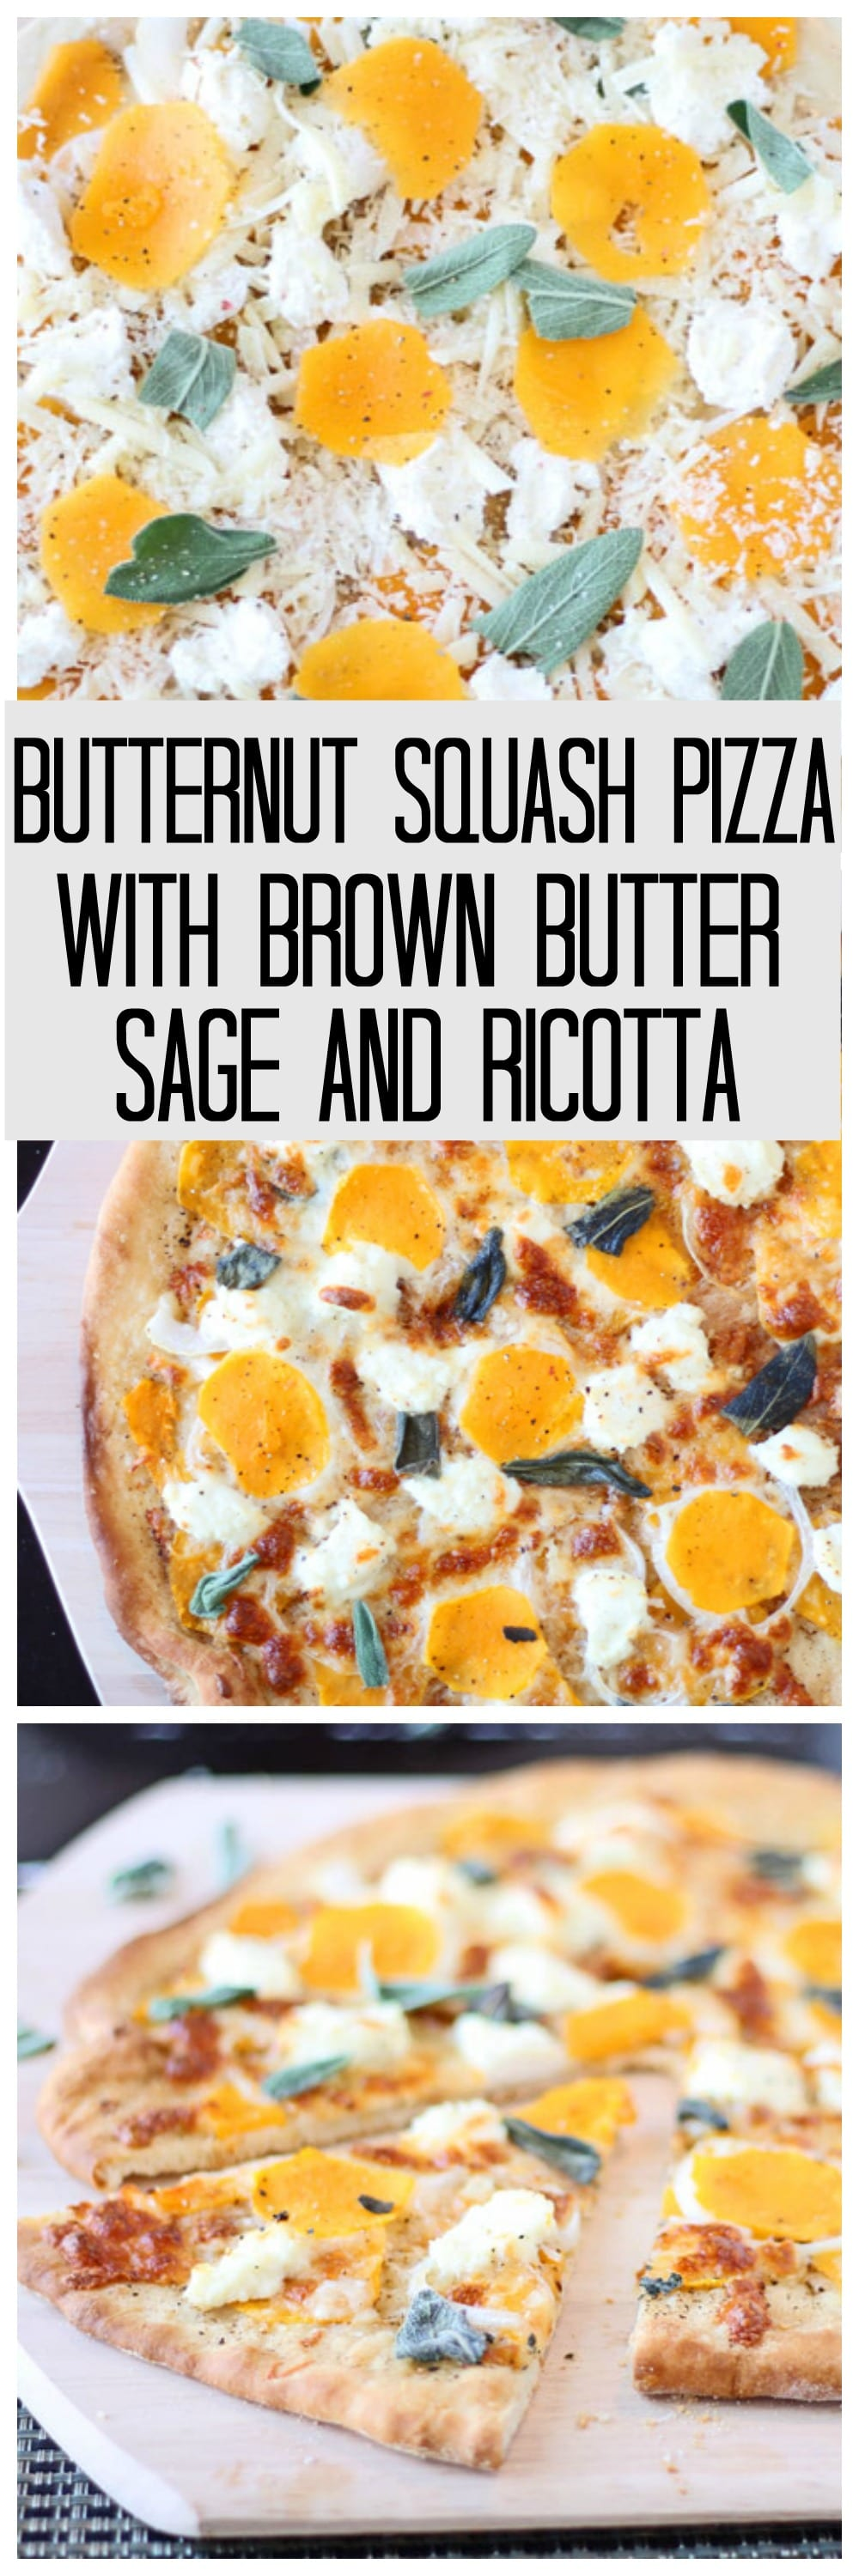 Buternut Squash Pizza with Brown Butter, Sage and Ricotta